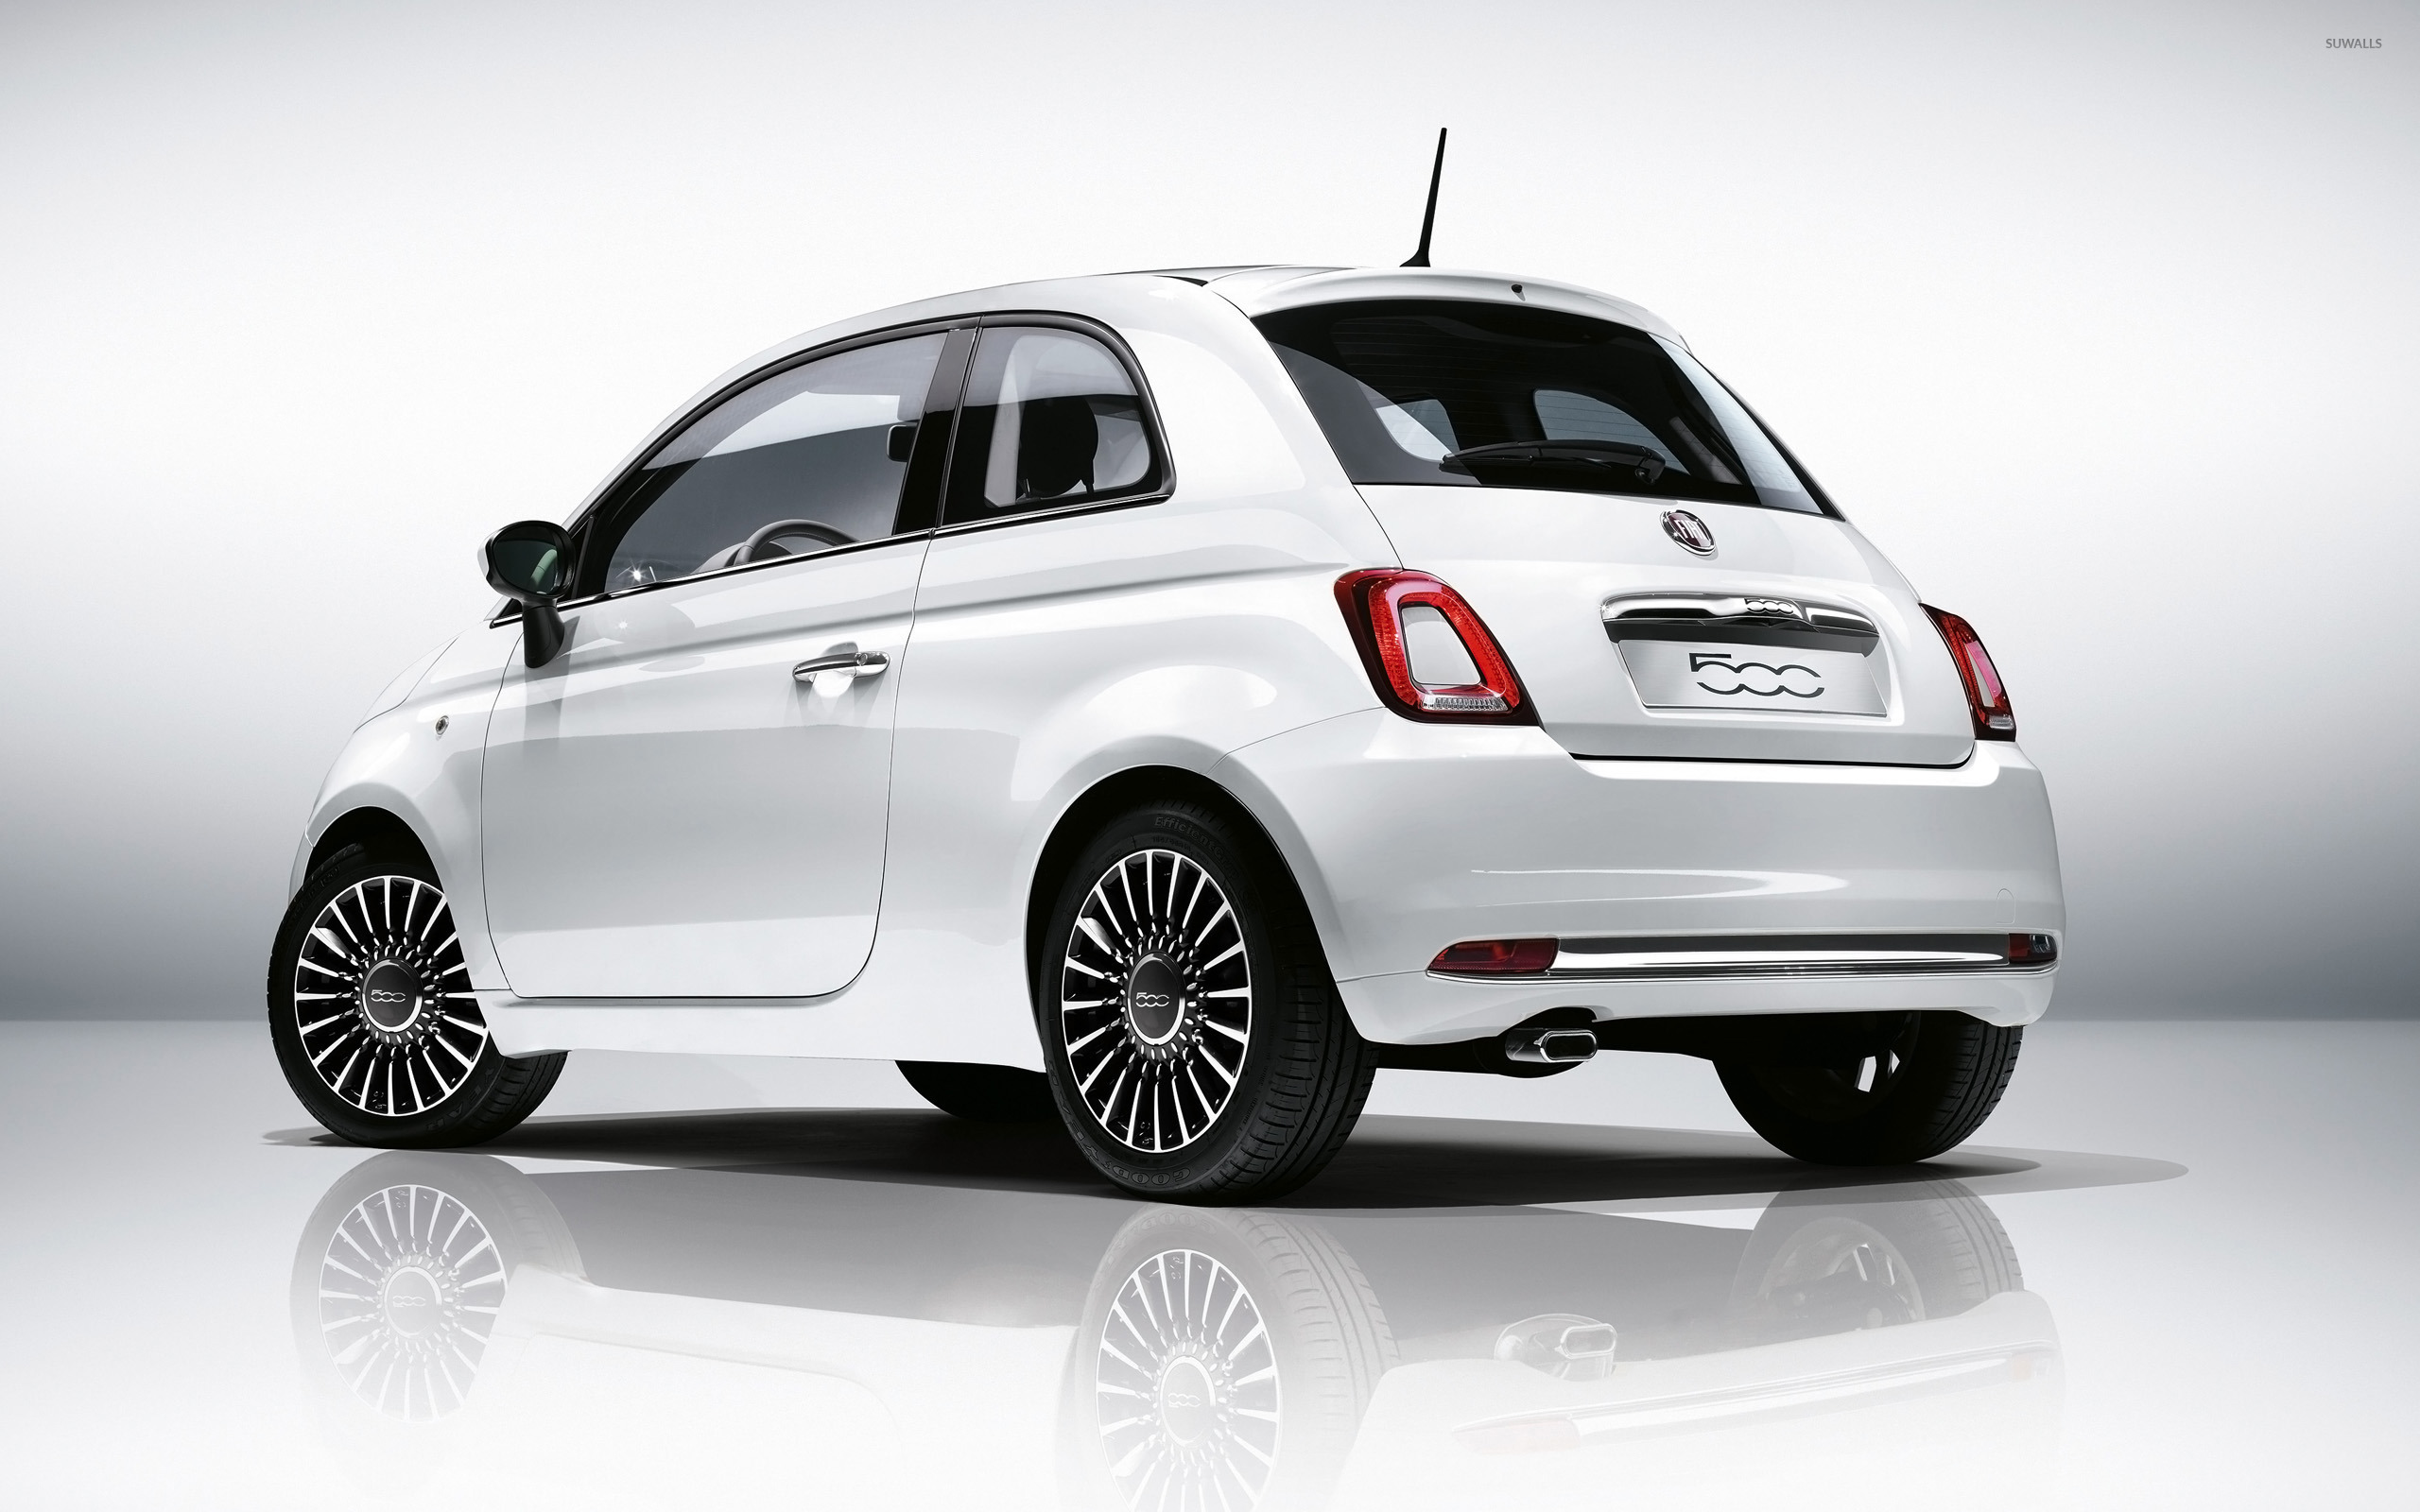 by in wallpaper back side titled you fiat are pose blue viewing of diesel